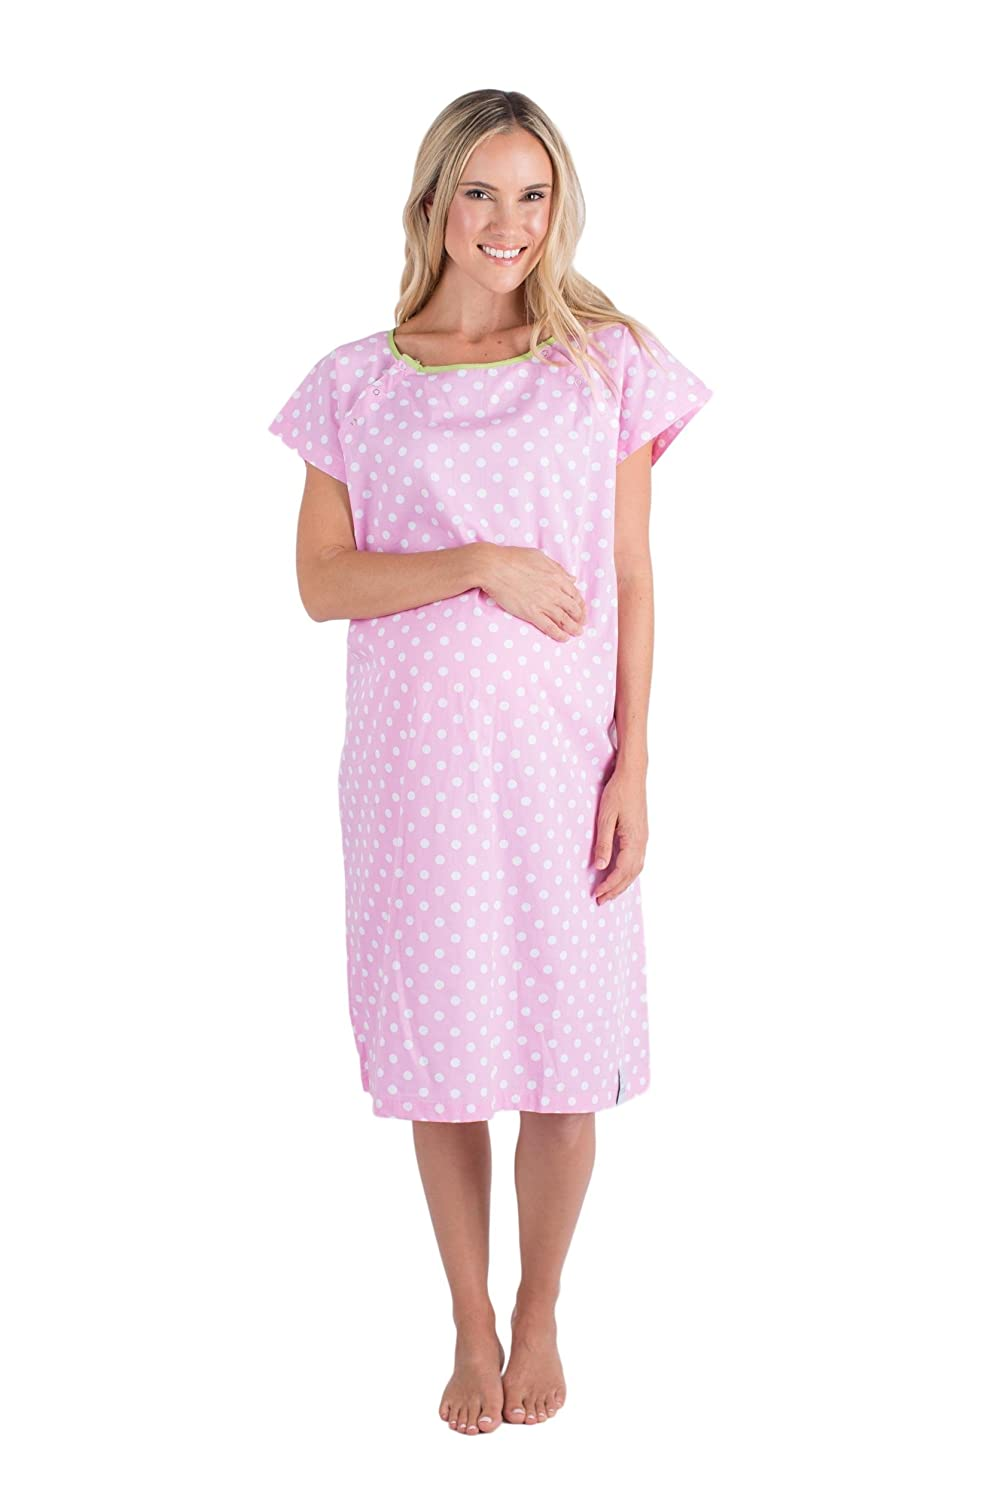 Gownie Molly (Size 12-20)- Baby Be Mine Maternity - Hospital Gown ...